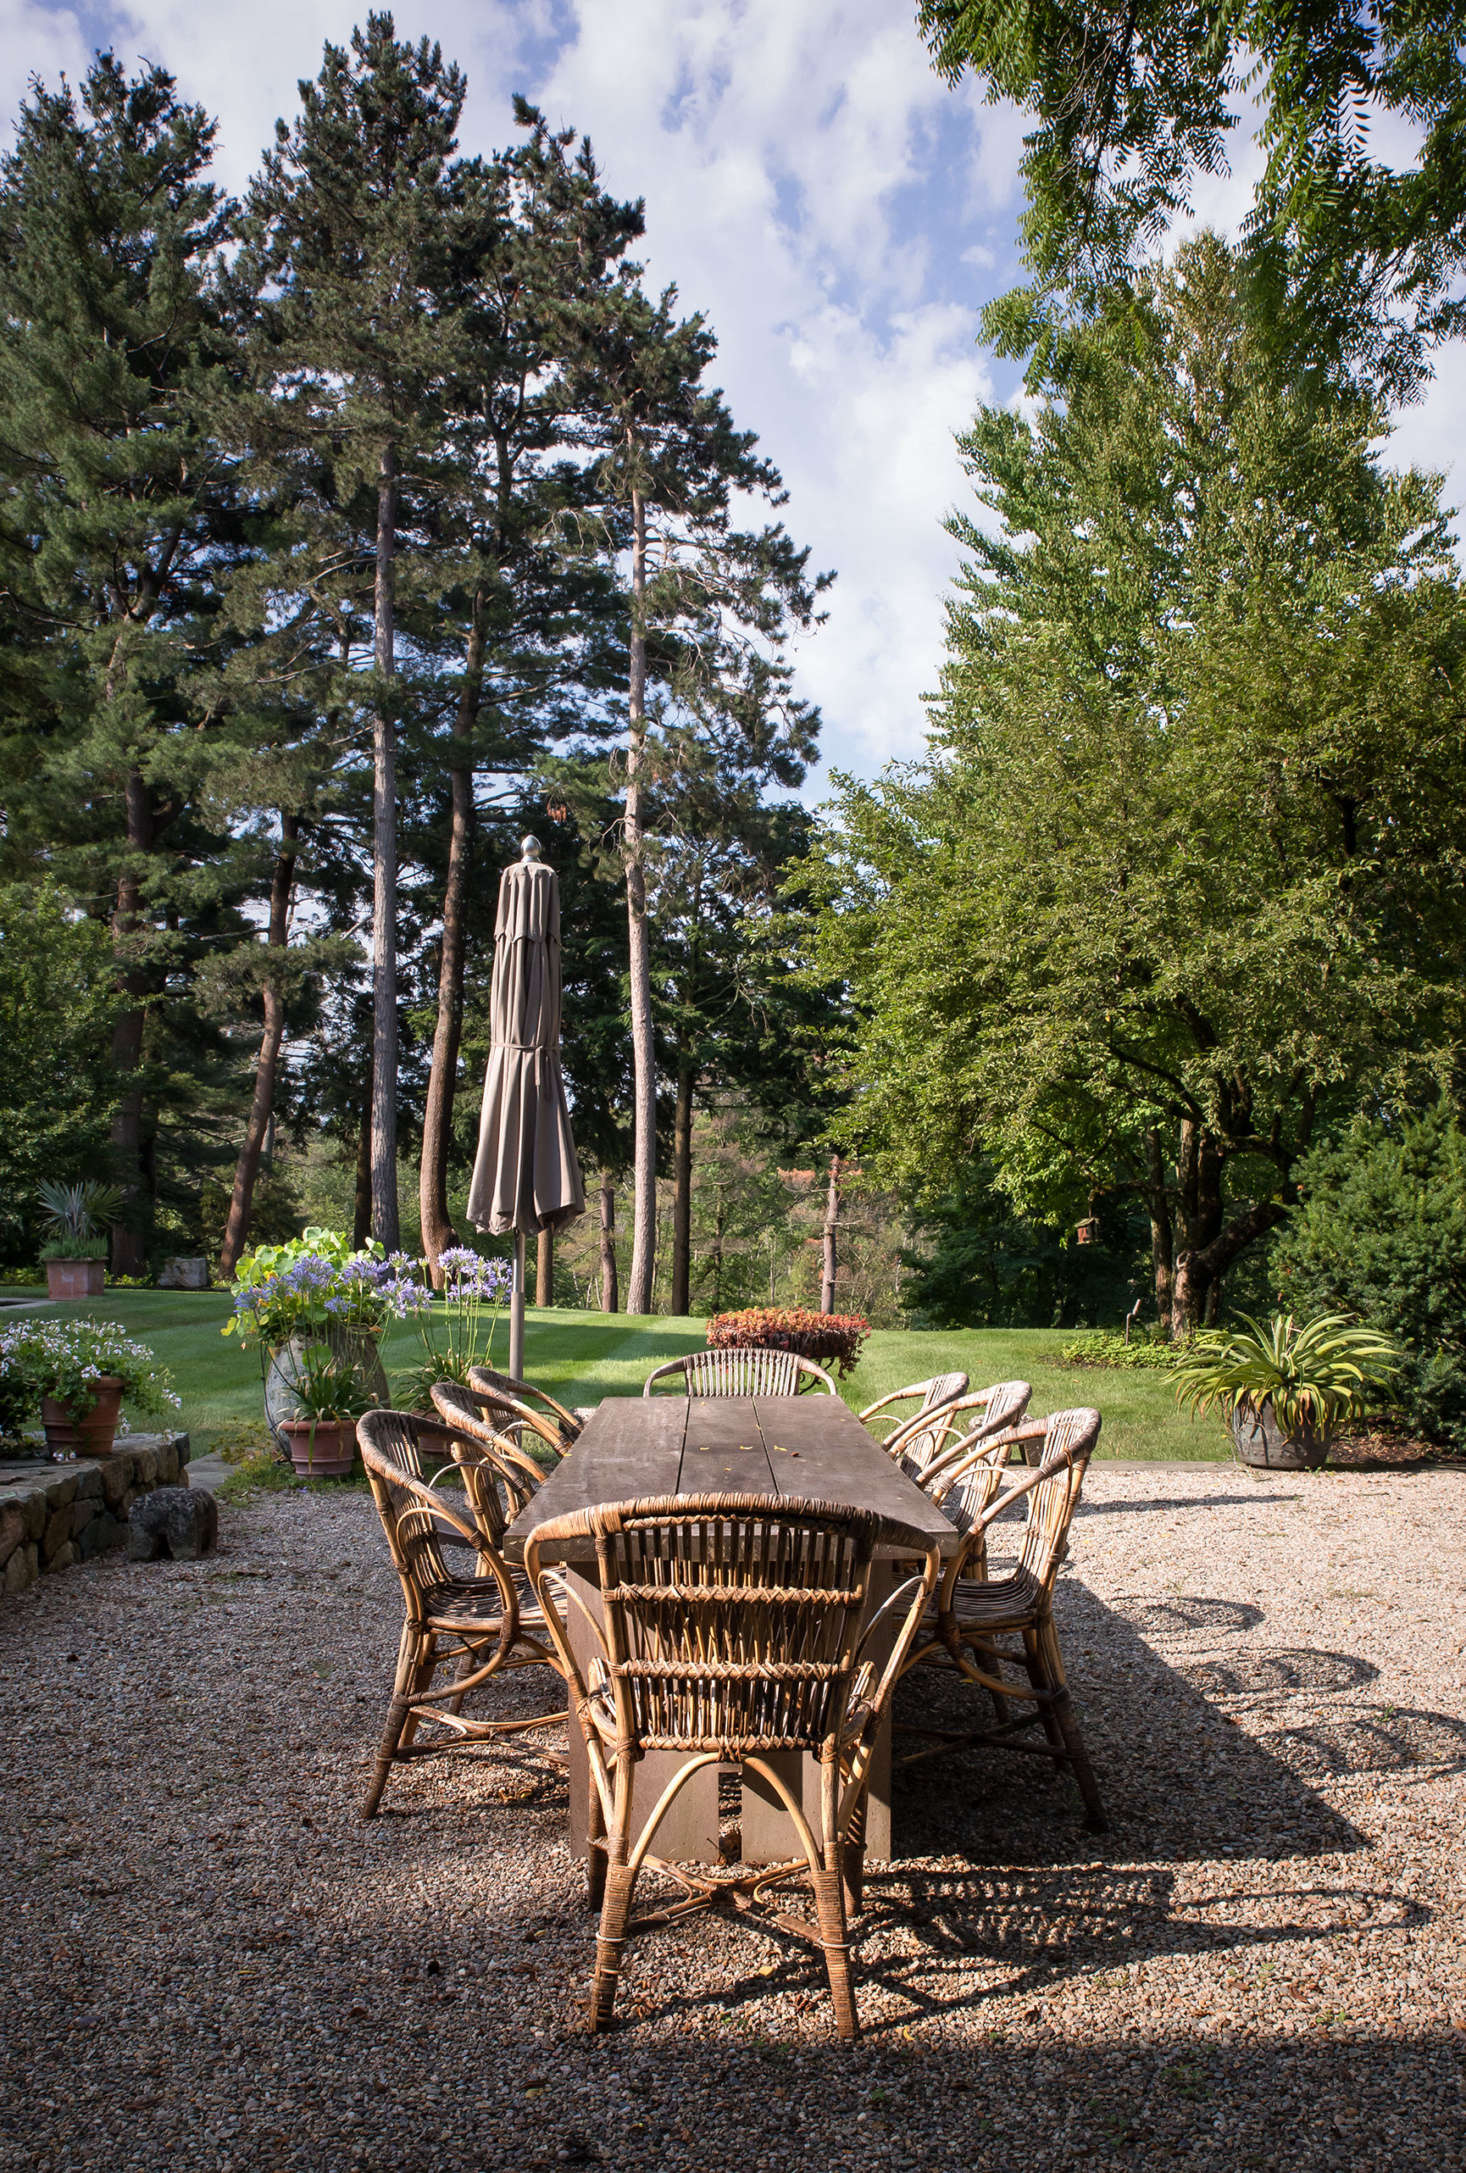 An interior designer, owner Abby Yozell took the lead on the furnishings and plantings around the terraces, choosing relaxed pieces that reflect the casual elegance of the garden.